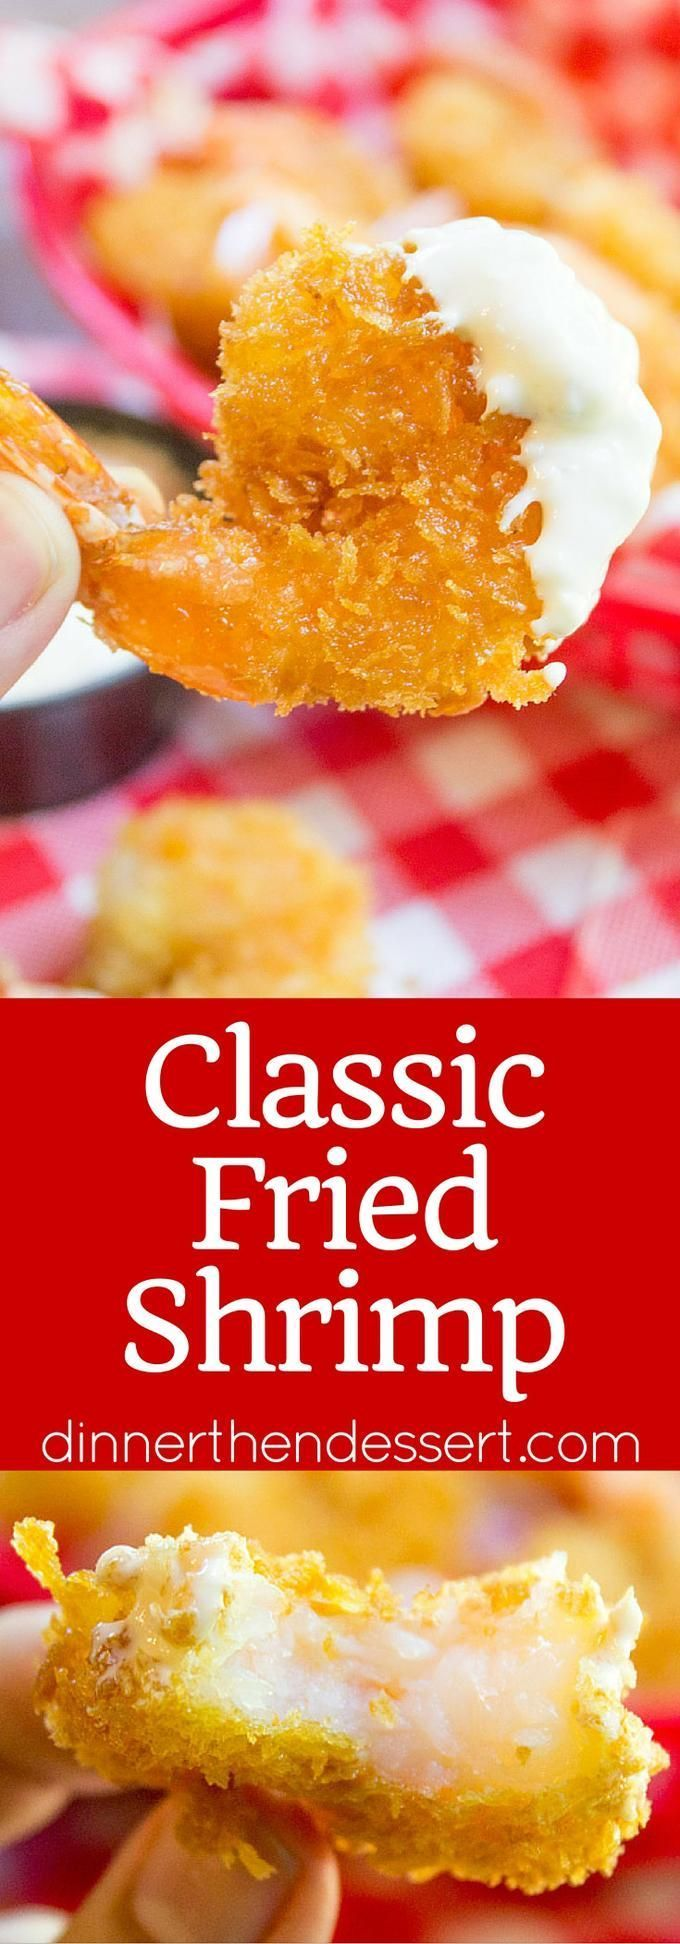 Classic Fried Shrimp Made With Panko Keeps Your Shrimp Light Crispy And Not Weighed Down